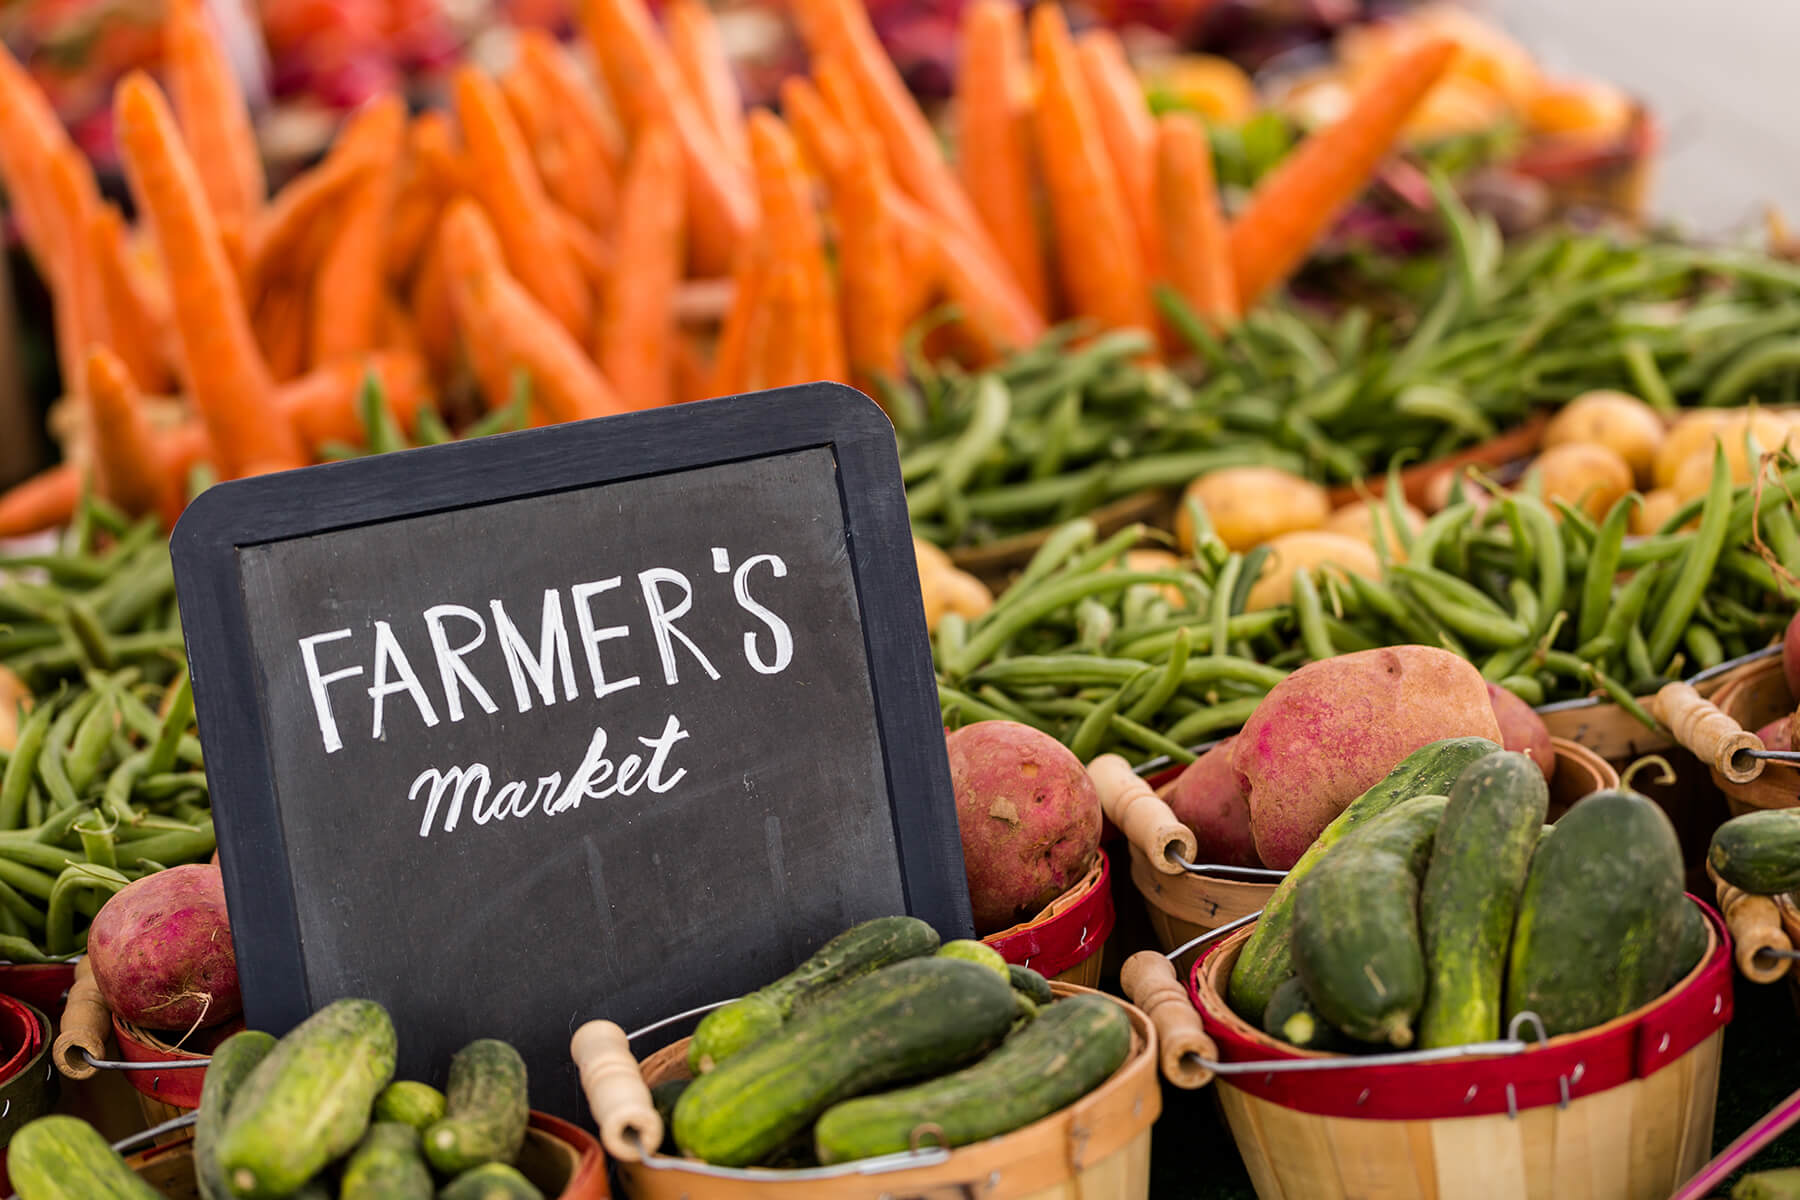 Farmers' Market sign in a group of veggies